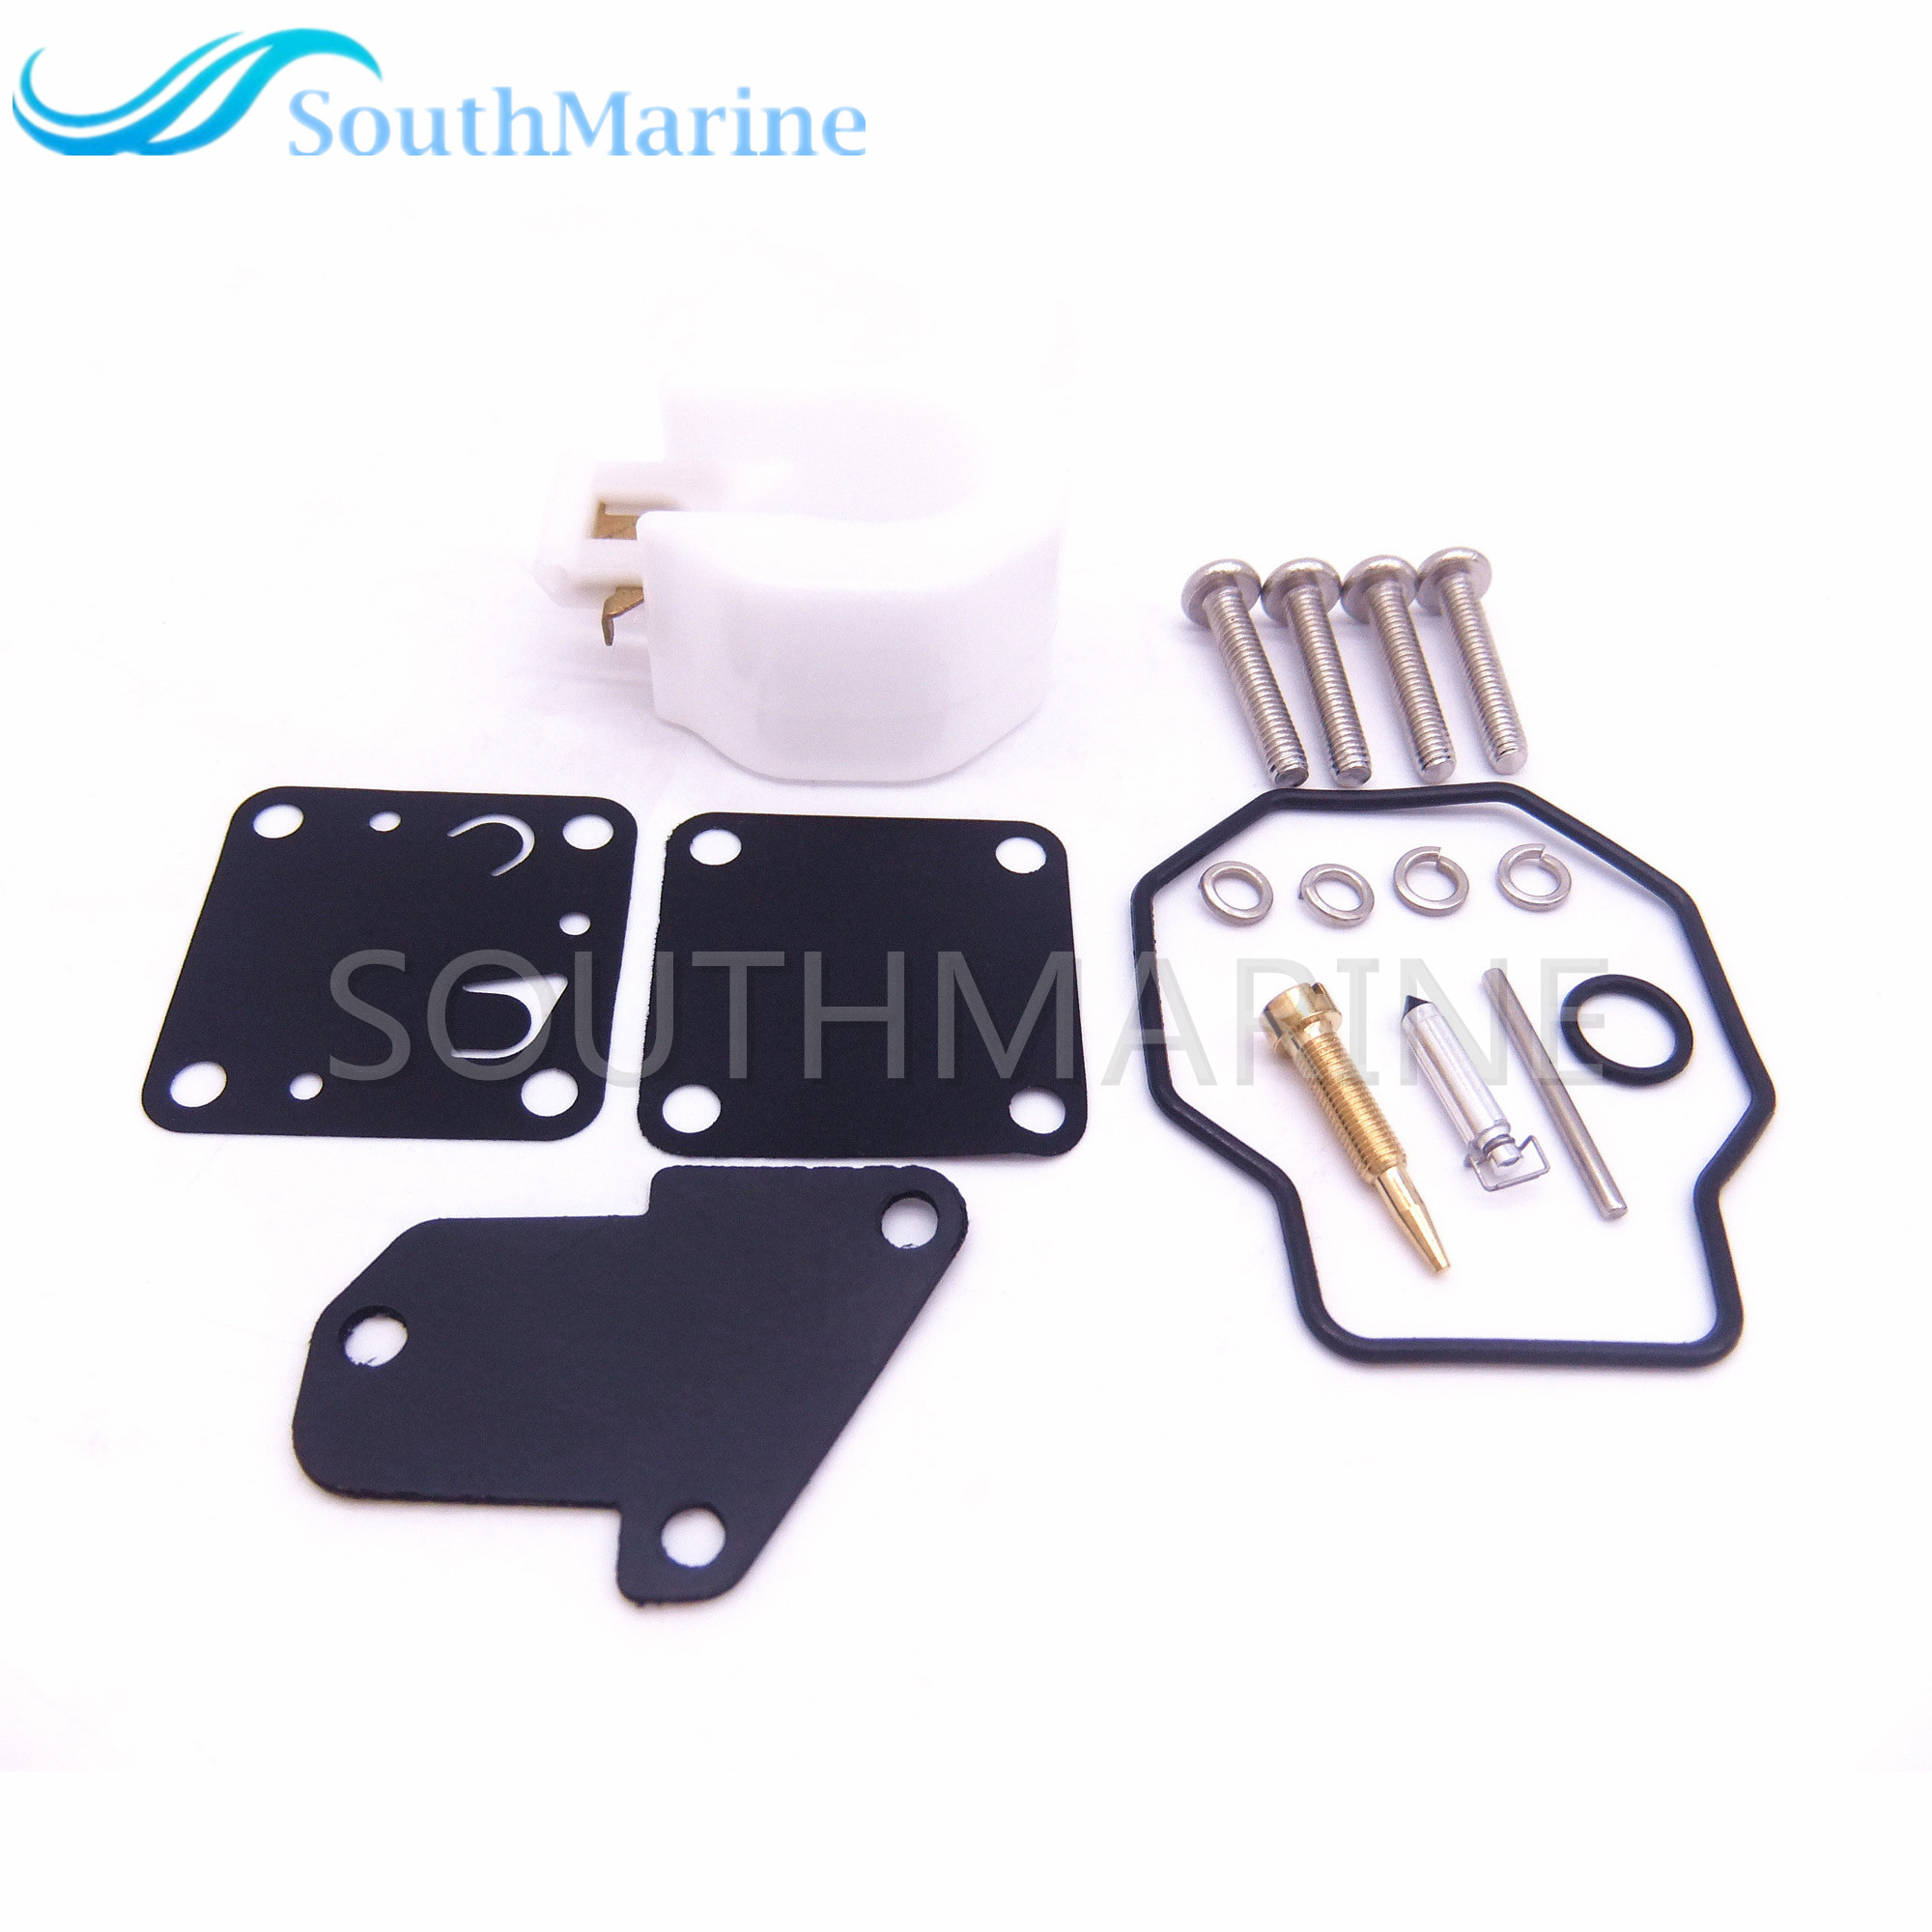 6E3-W0093 6E0-W0093 Boat Motor Carburetor Repair Kit for Yamaha 4HP 5HP 4M 5M Outboard Engine, Free Shipping